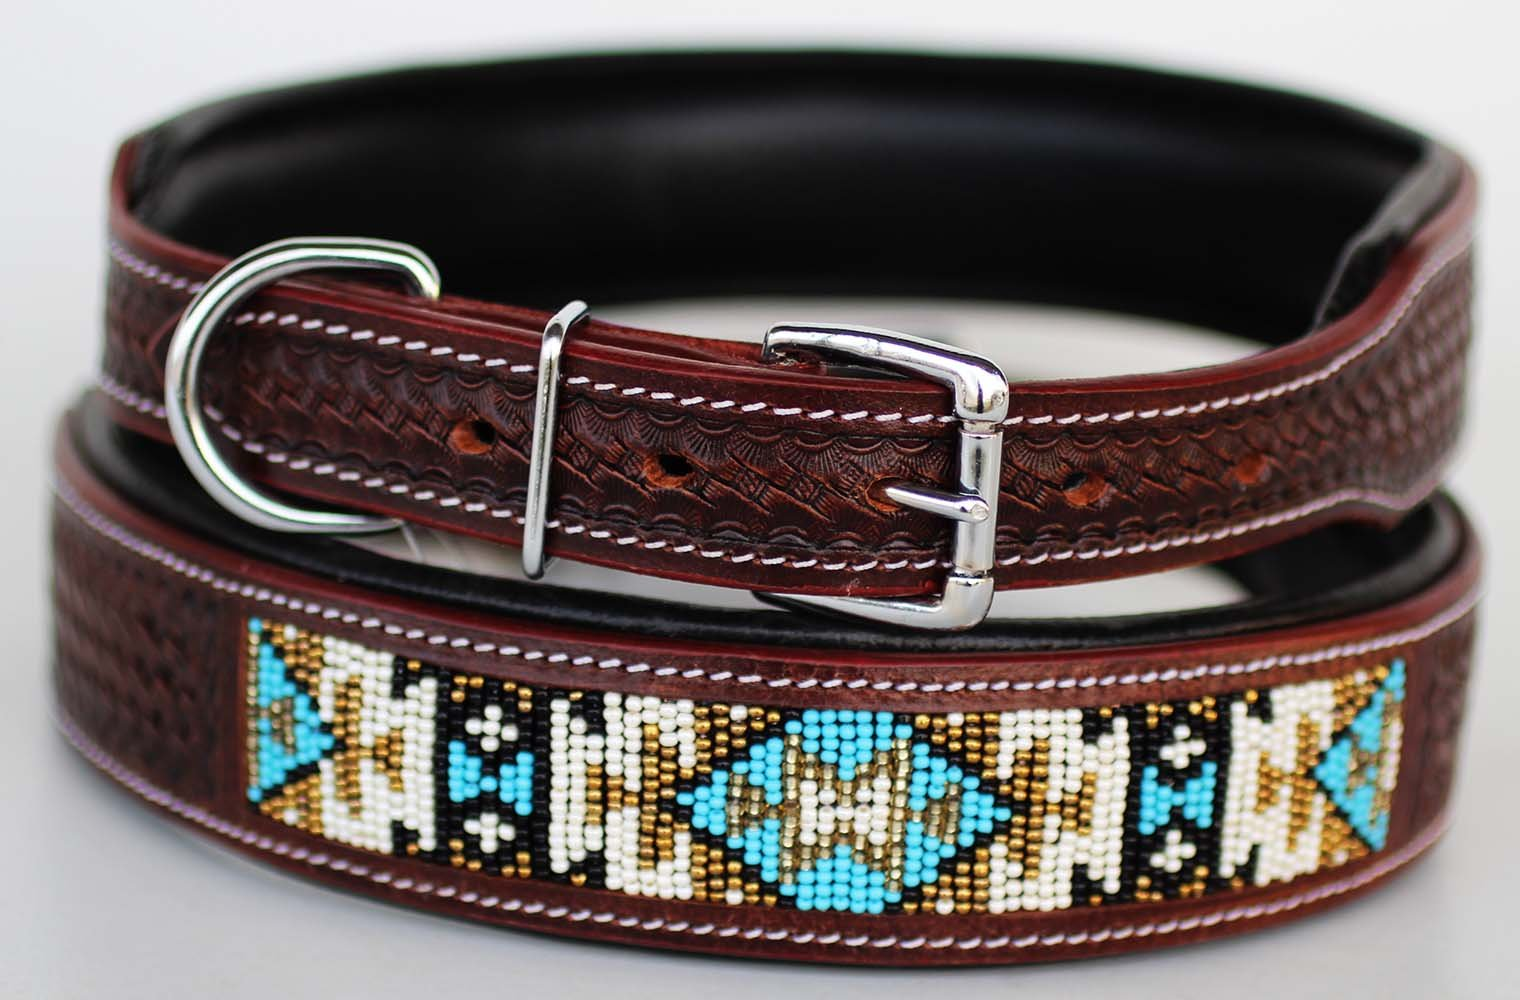 PRORIDER Medium 17''- 21'' Dog Puppy Collar Cow Leather Adjustable Padded Canine 6071 by PRORIDER